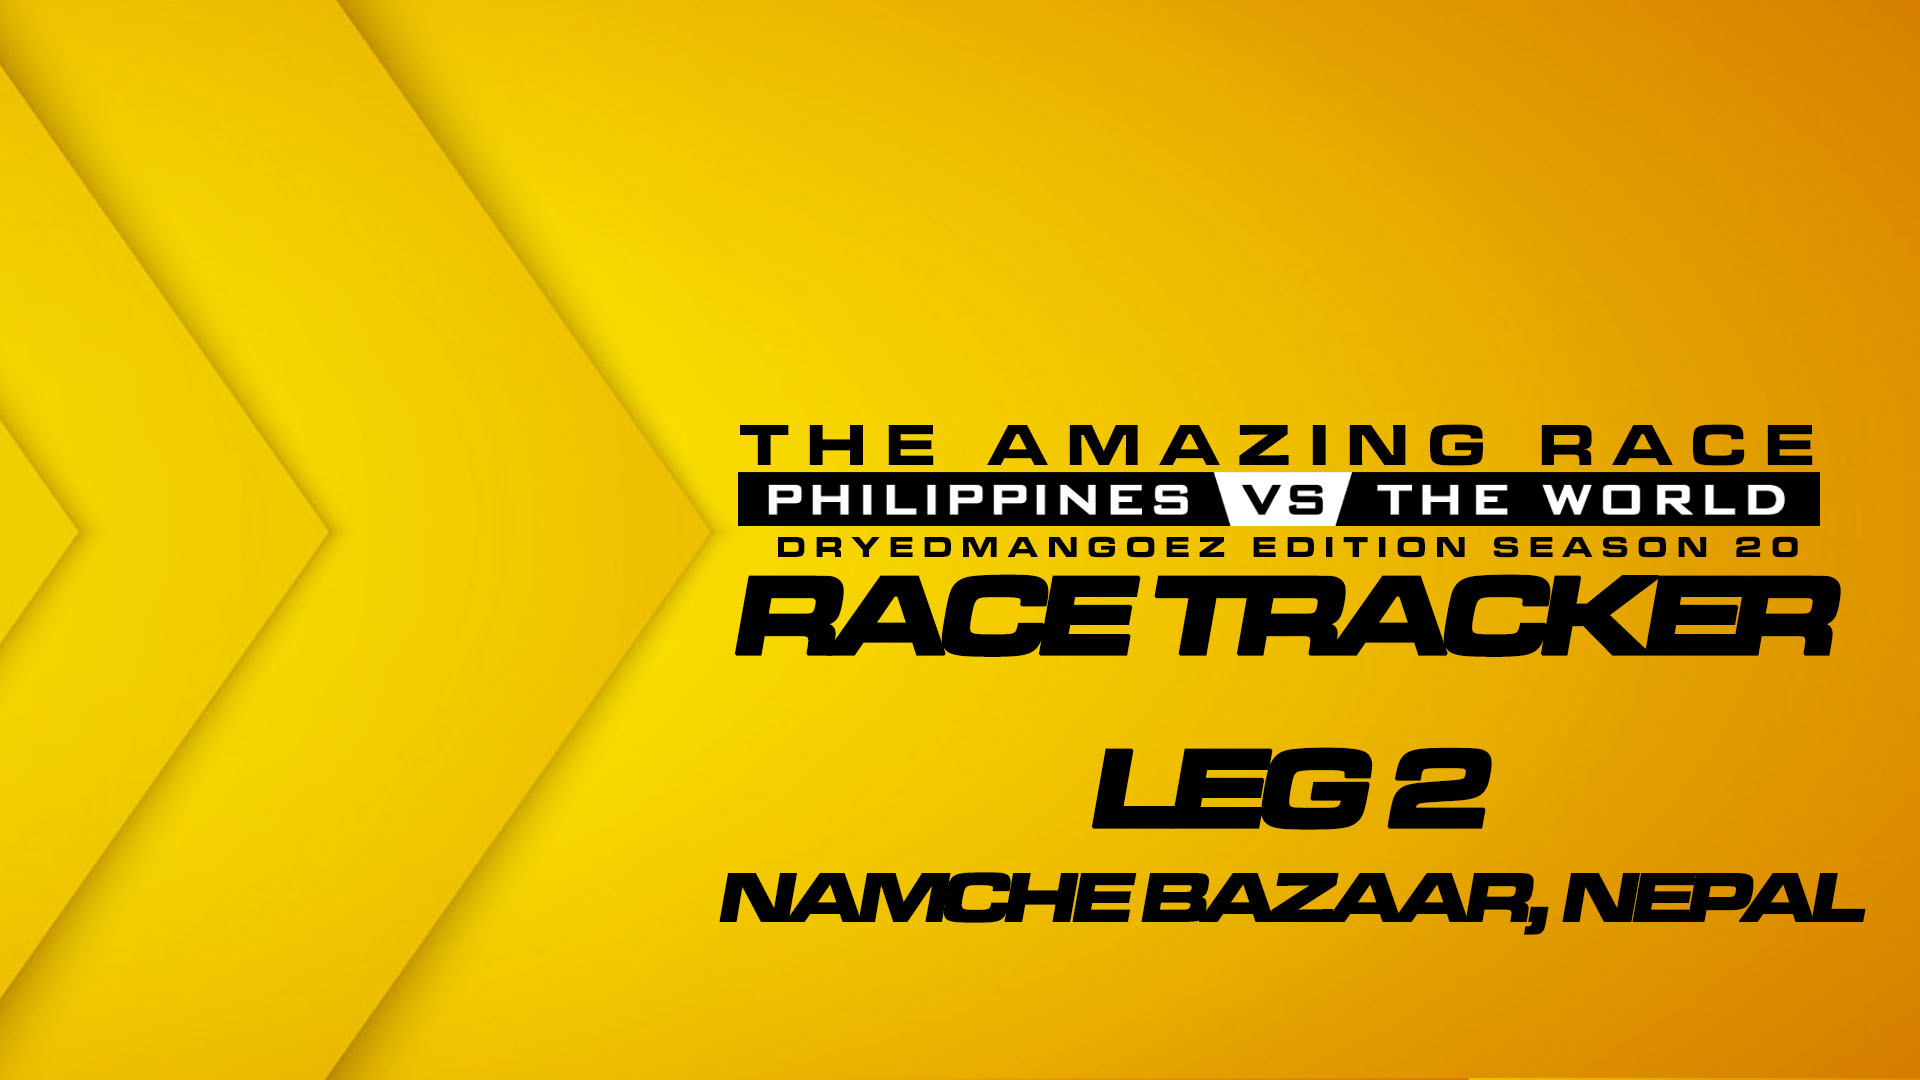 The Amazing Race Philippines vs The World (DryedMangoez Edition Season 20) Race Tracker – Leg 2